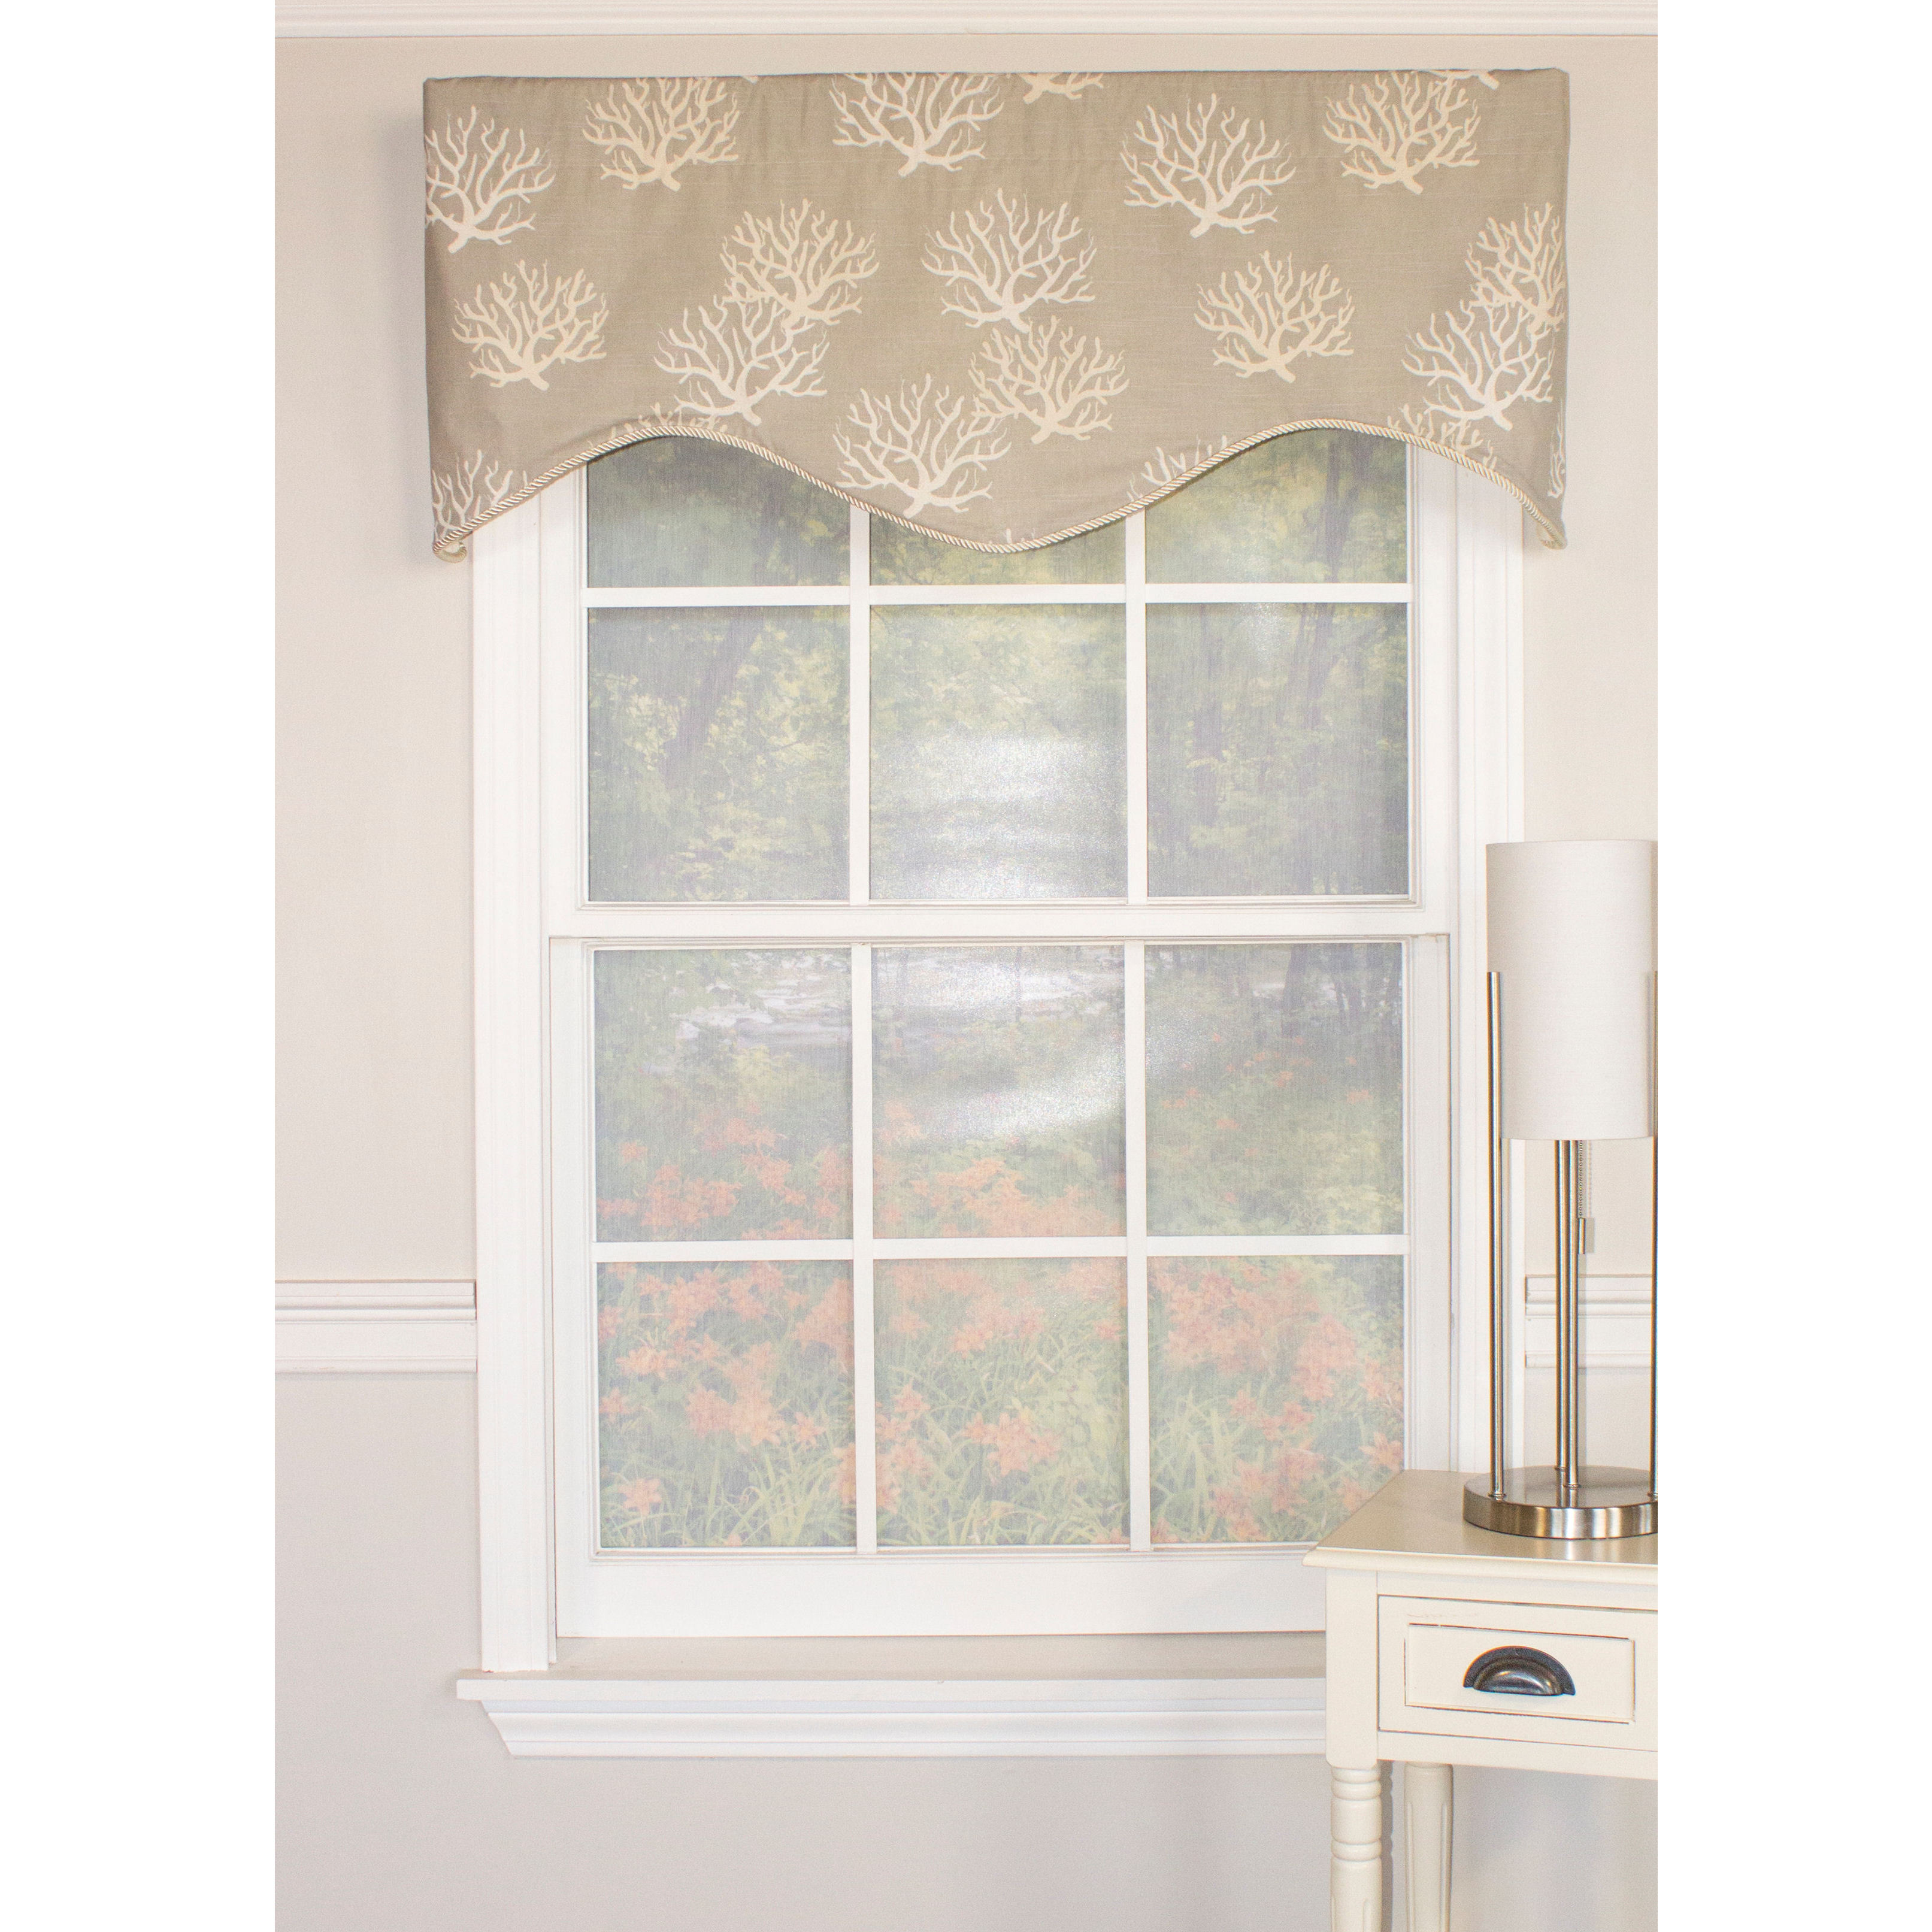 trim faux home juline garden free embellished product overstock tassel silk solid lined waterfall on valance over valances orders shipping park madison